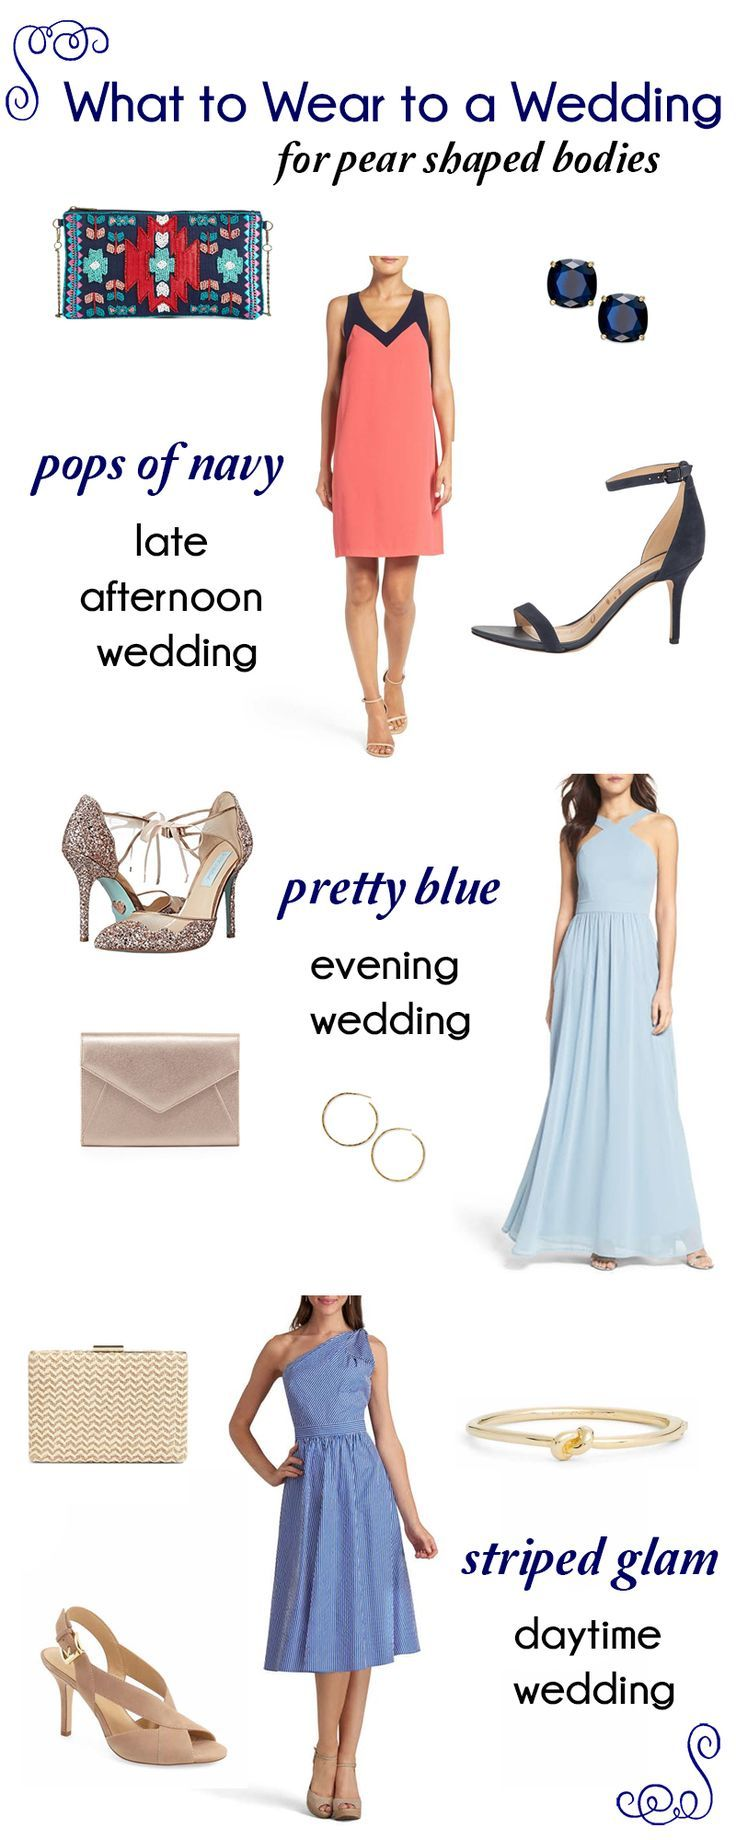 The Best Wedding Guest Dress For A Pear Shaped Body Lipgloss And Crayons Wedding Guest Dress Summer Best Wedding Guest Dresses Blue Wedding Guest Dresses [ 1840 x 736 Pixel ]